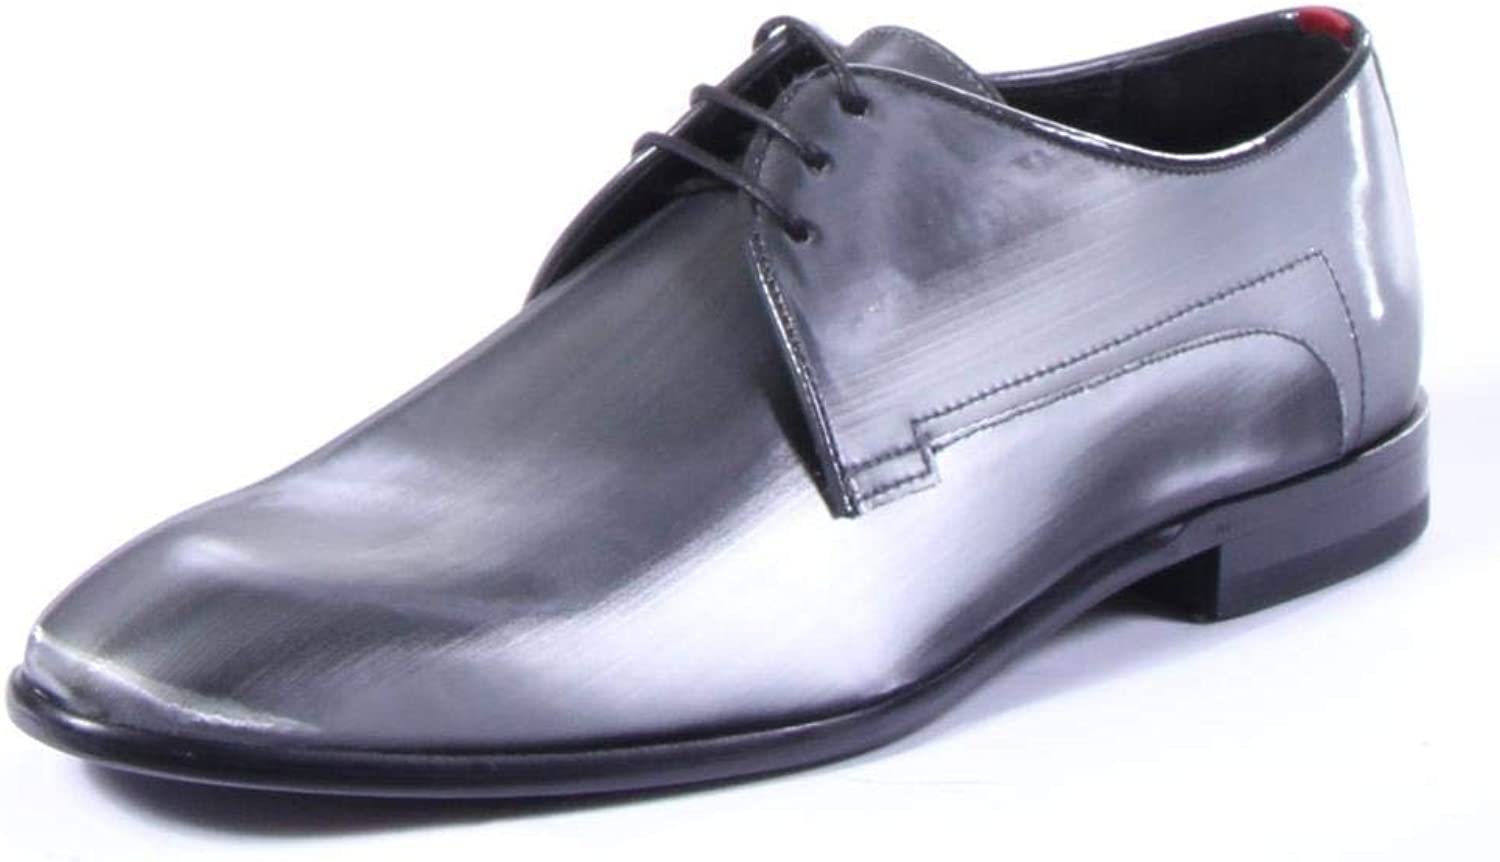 Hugo Boss Appeal_Derb_met Oxford shoes